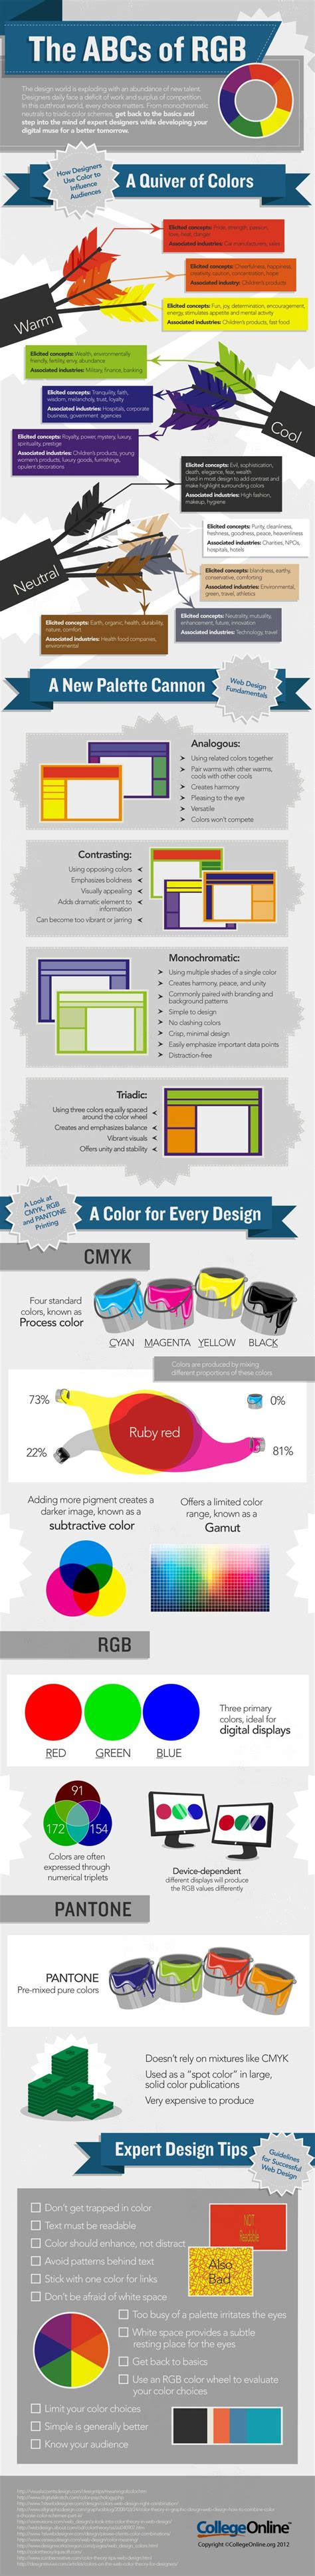 graphics design essentials color theory and the meaning behind color design